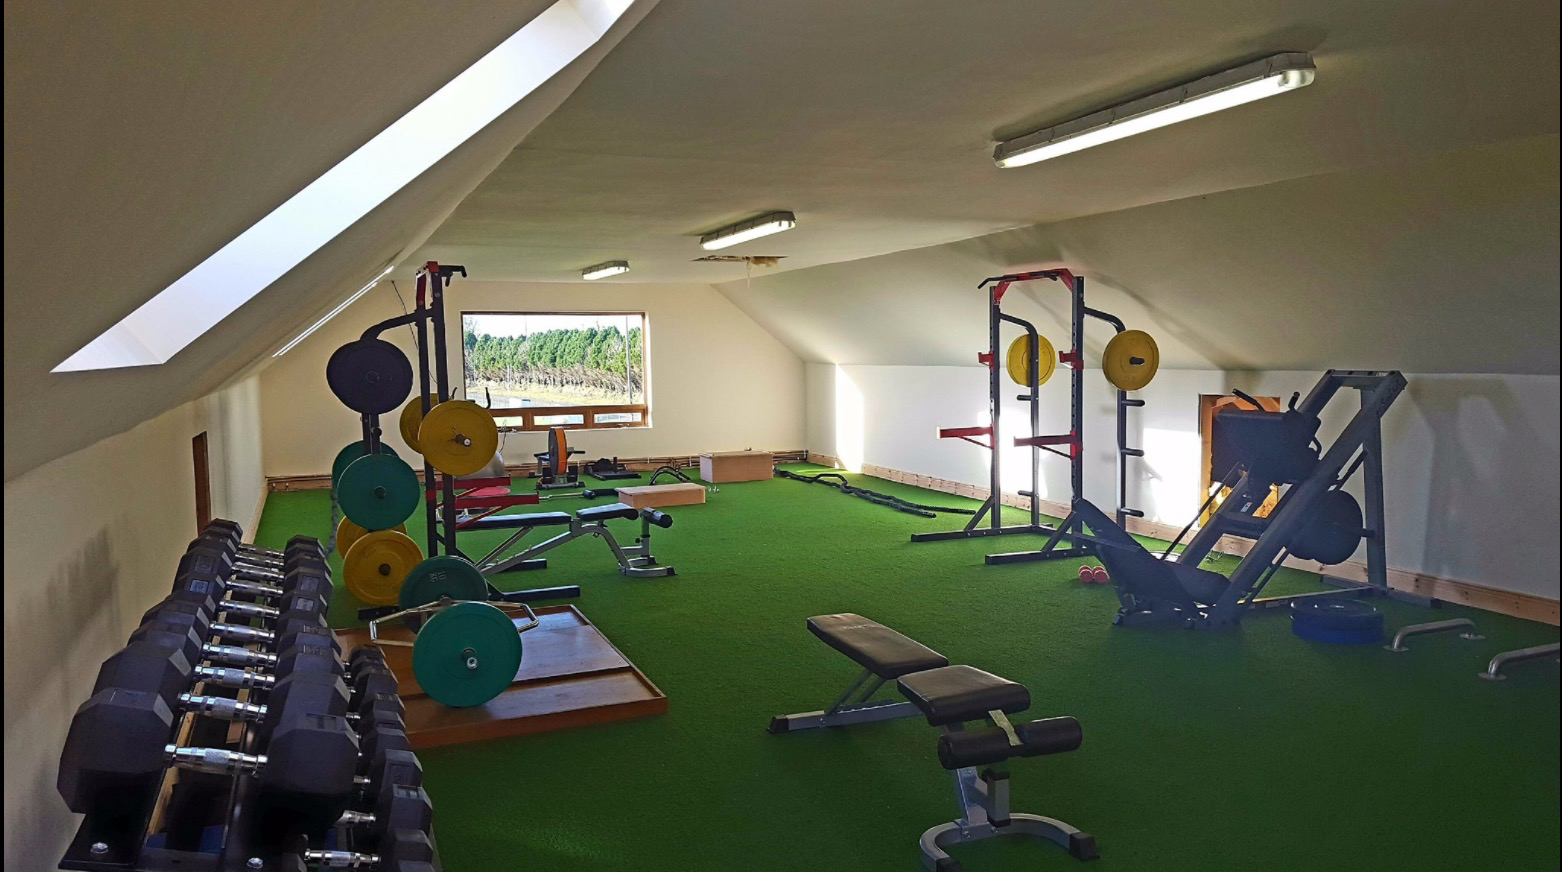 Gym installations fitness equipment ireland best for buying